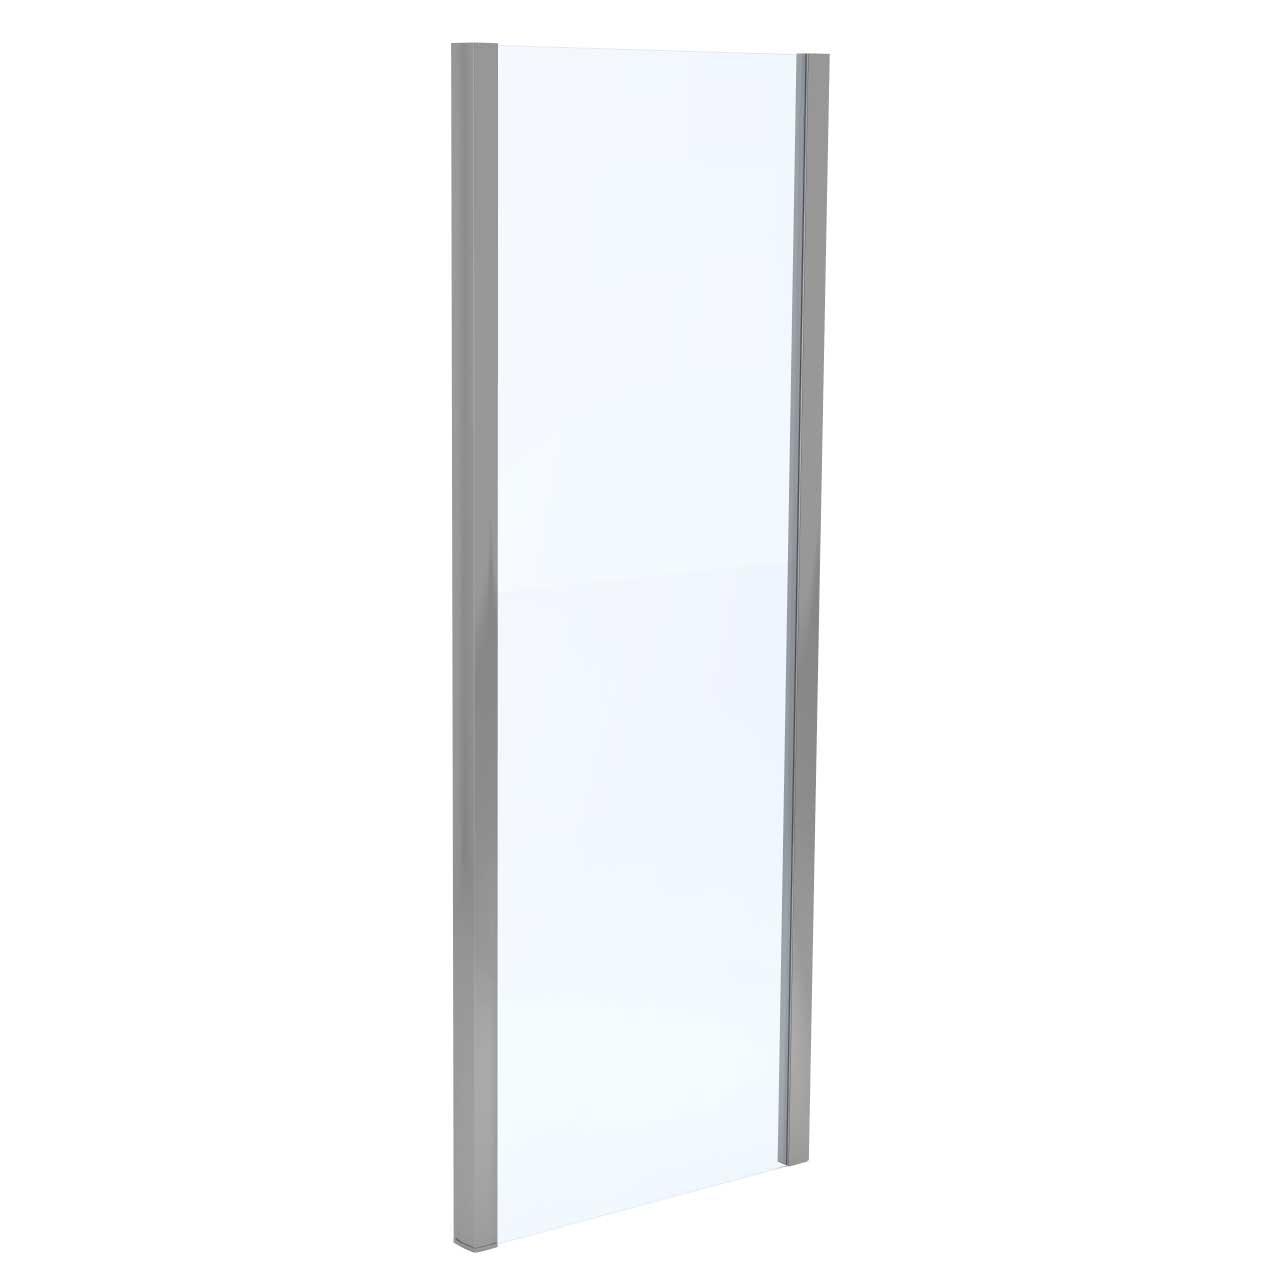 Series 6 1400mm x 700mm Double Sliding Door Shower Enclosure